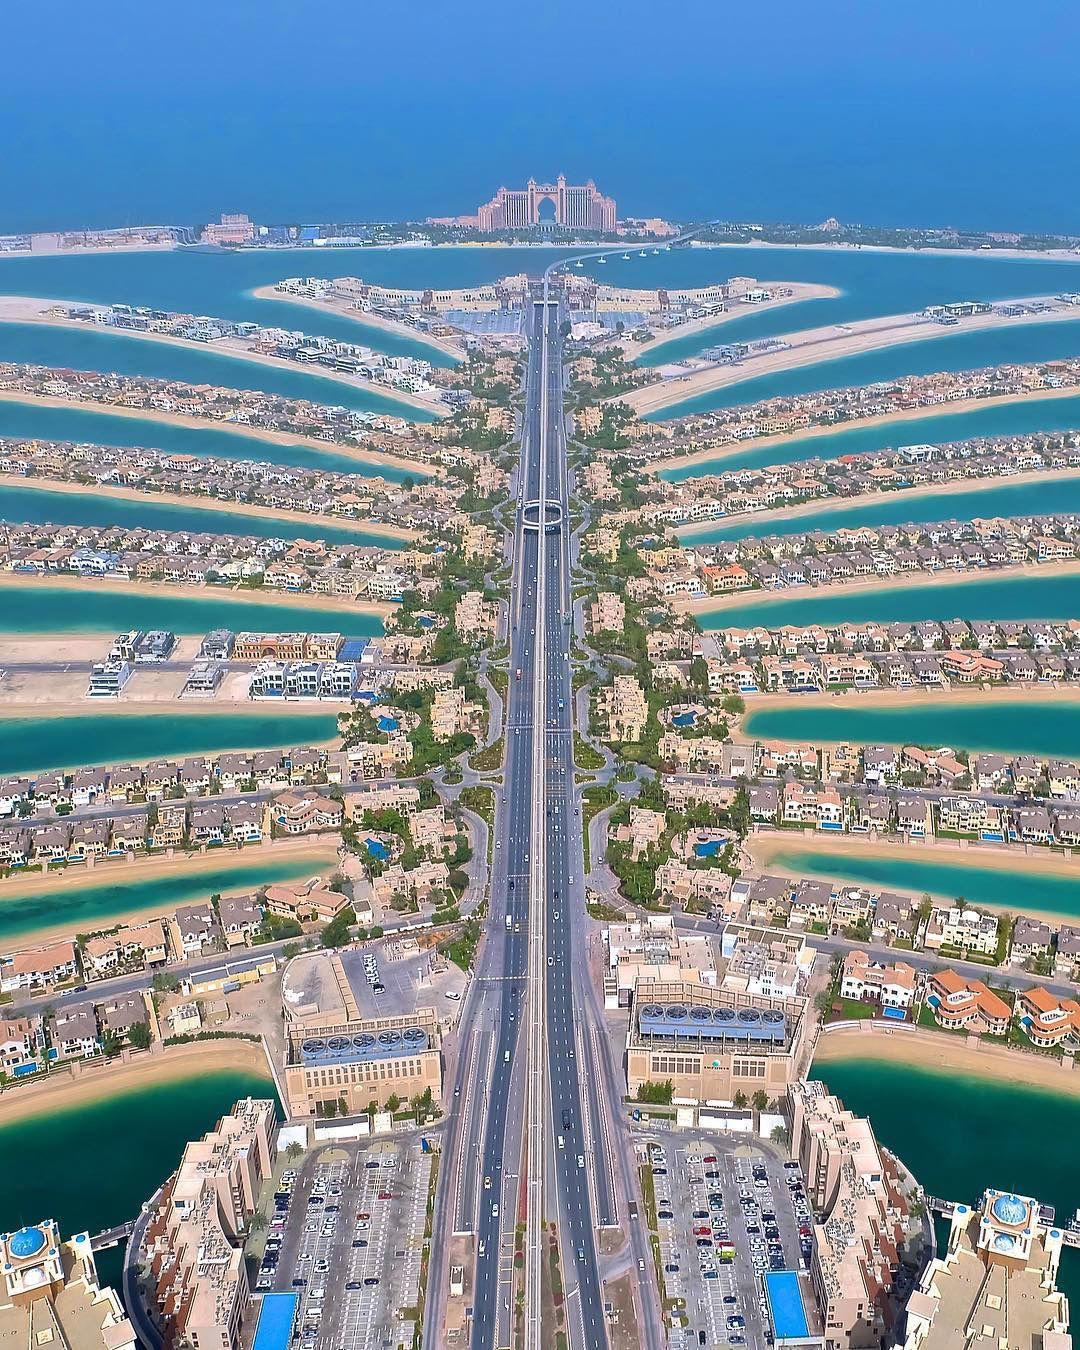 Cheap Apartments For Rent Dubai: Apartments For Sale And Rent In Palm Jumeirah Dubai In